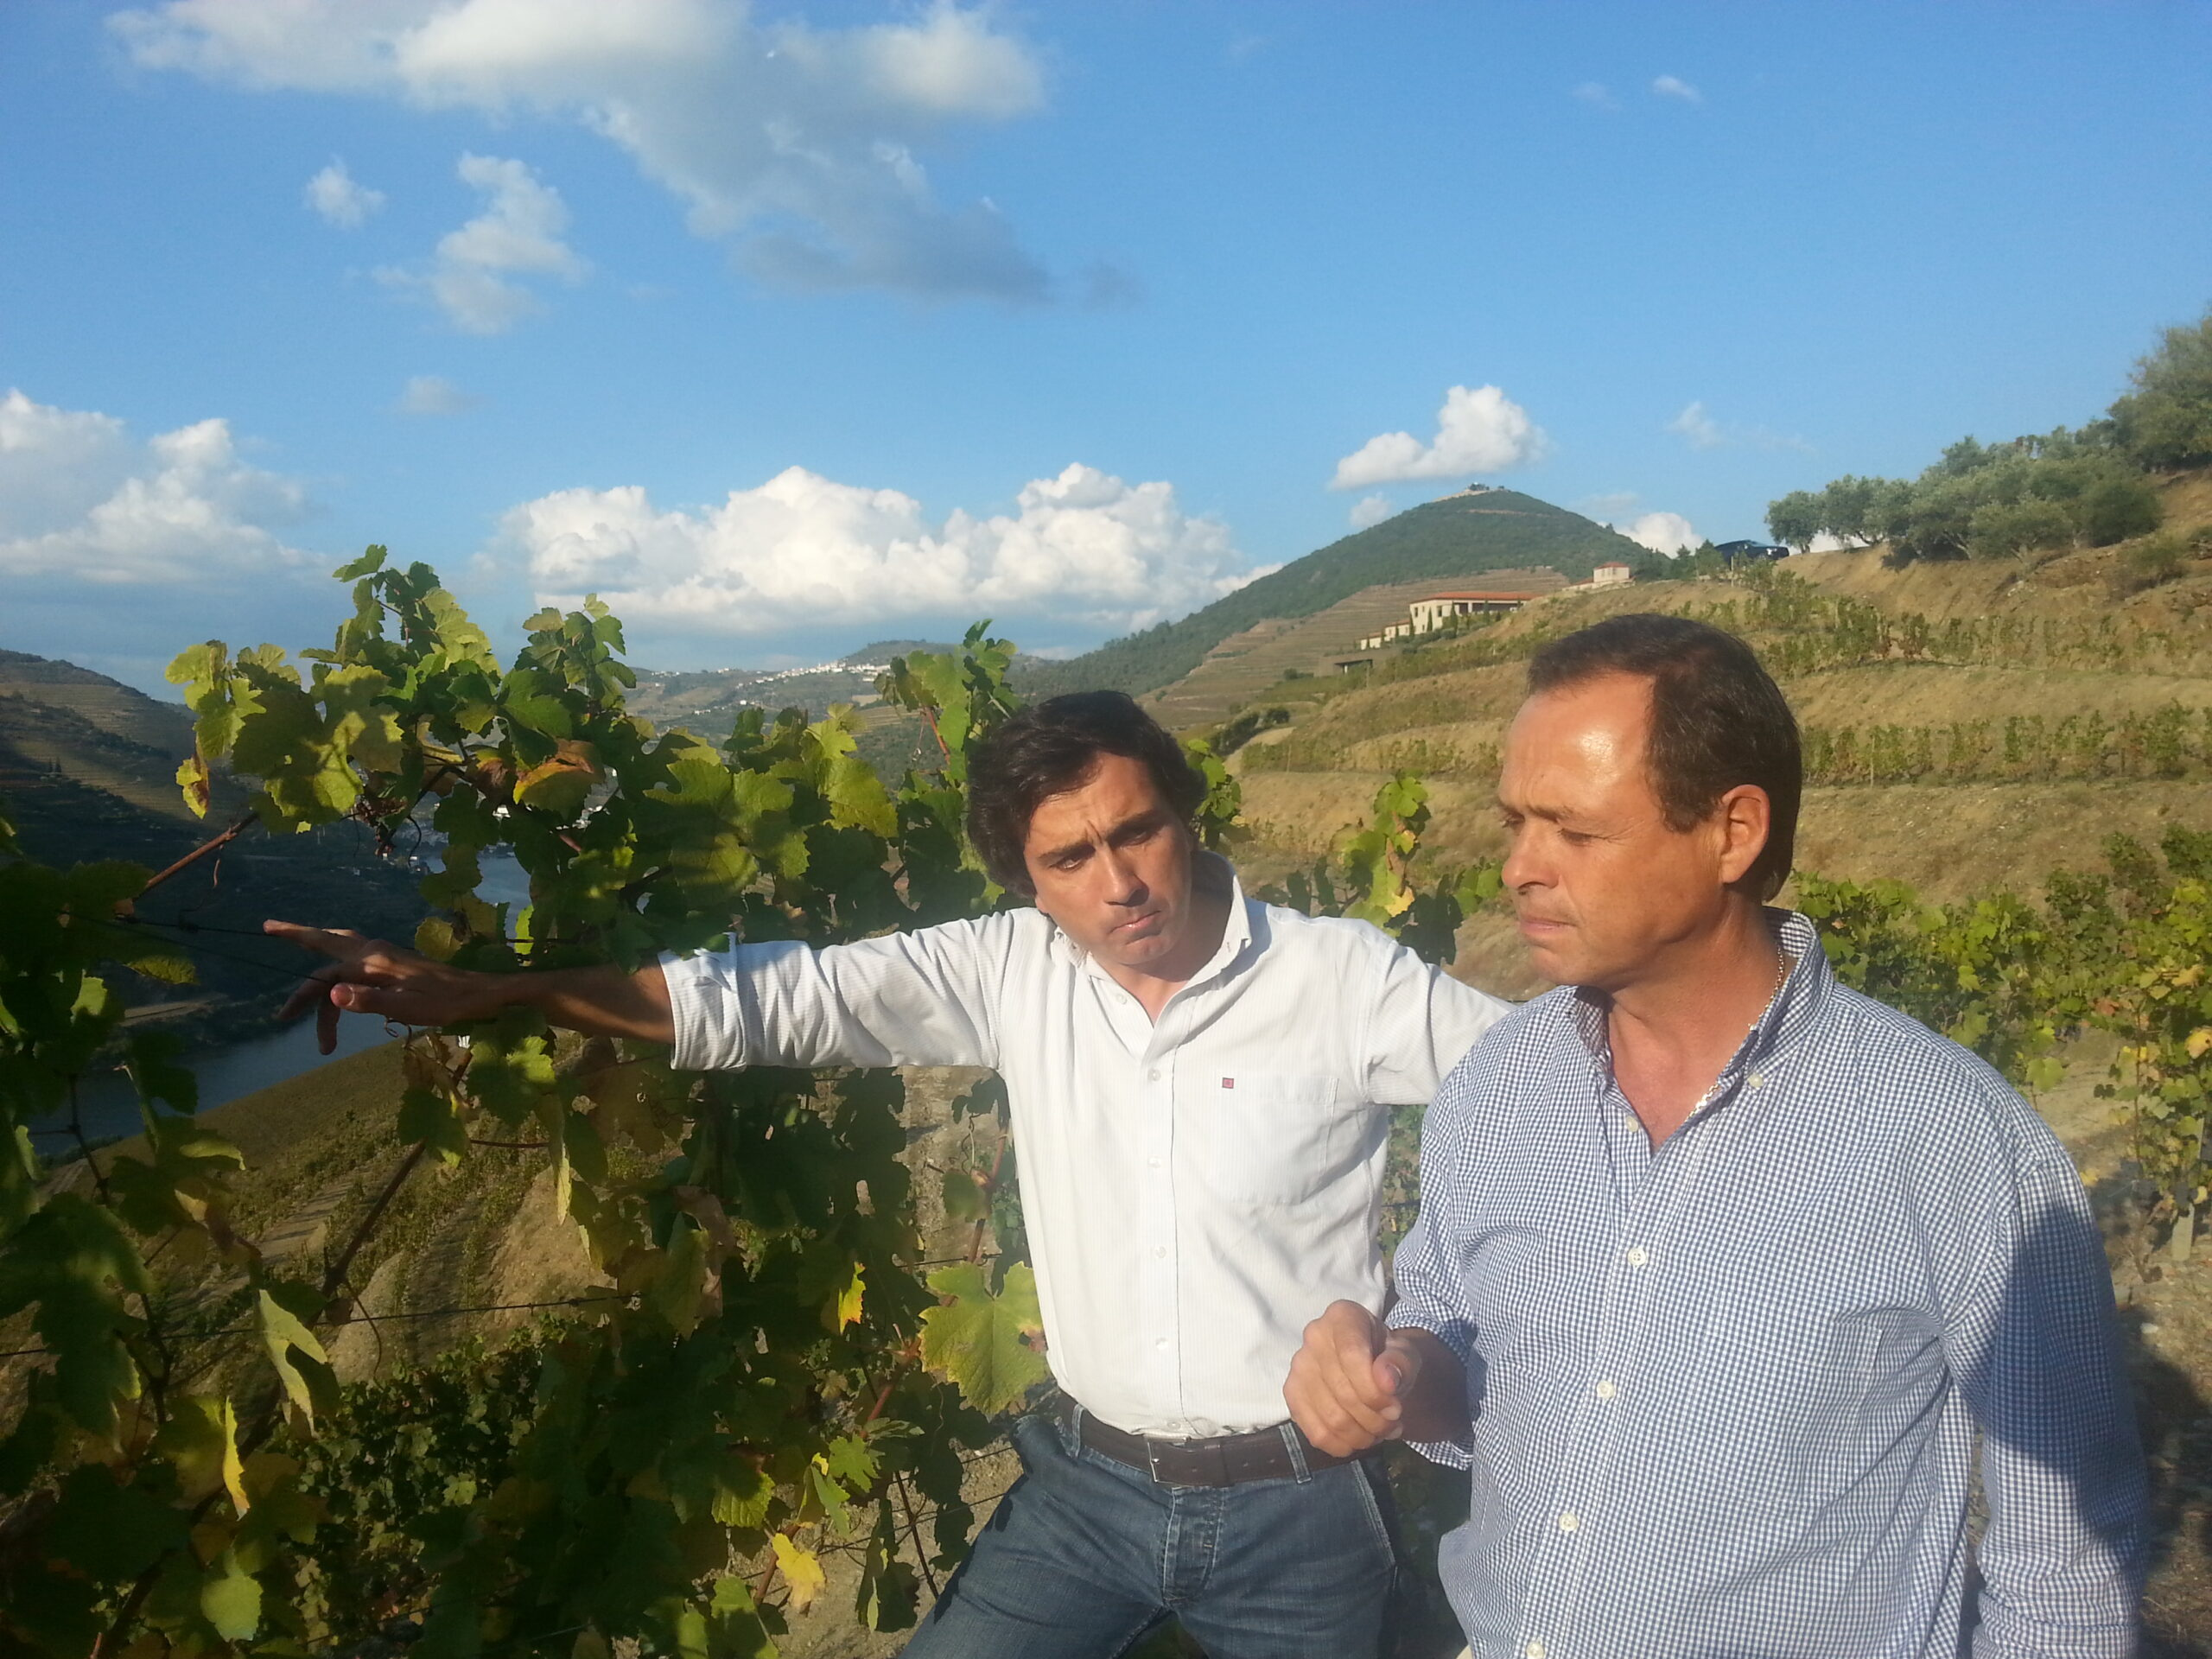 Luís Sottomayor, tasting out in the field, at Quinta do Seixo, vintage 2014